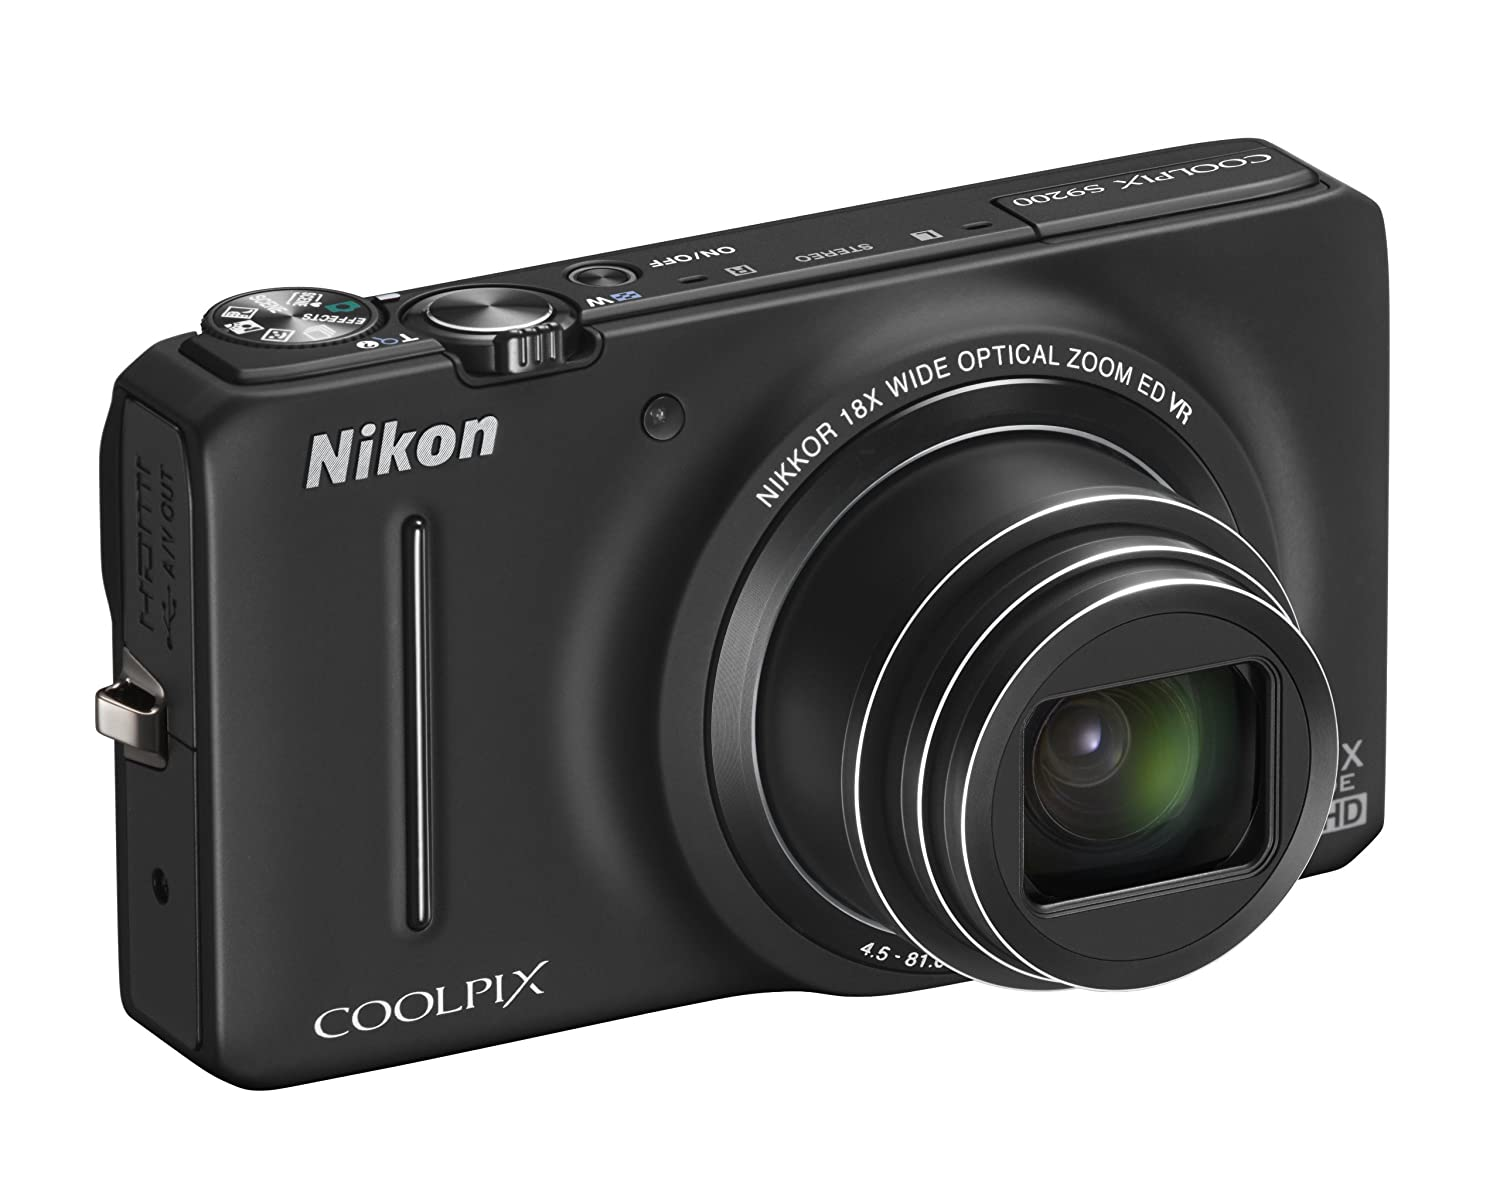 NIKON COOLPIX S9200 CAMERA WINDOWS 10 DRIVERS